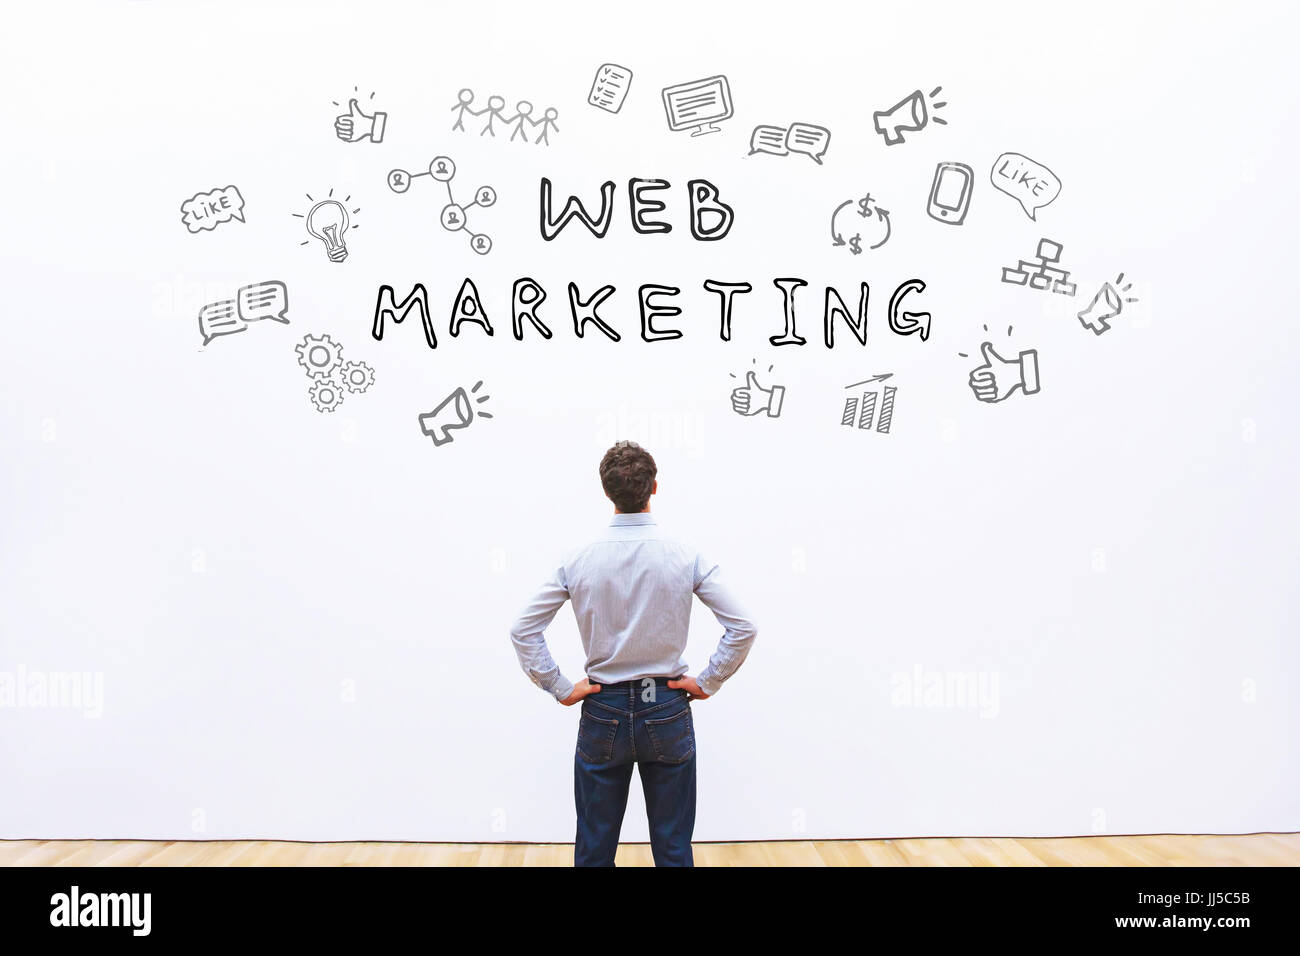 Concept de marketing web Photo Stock